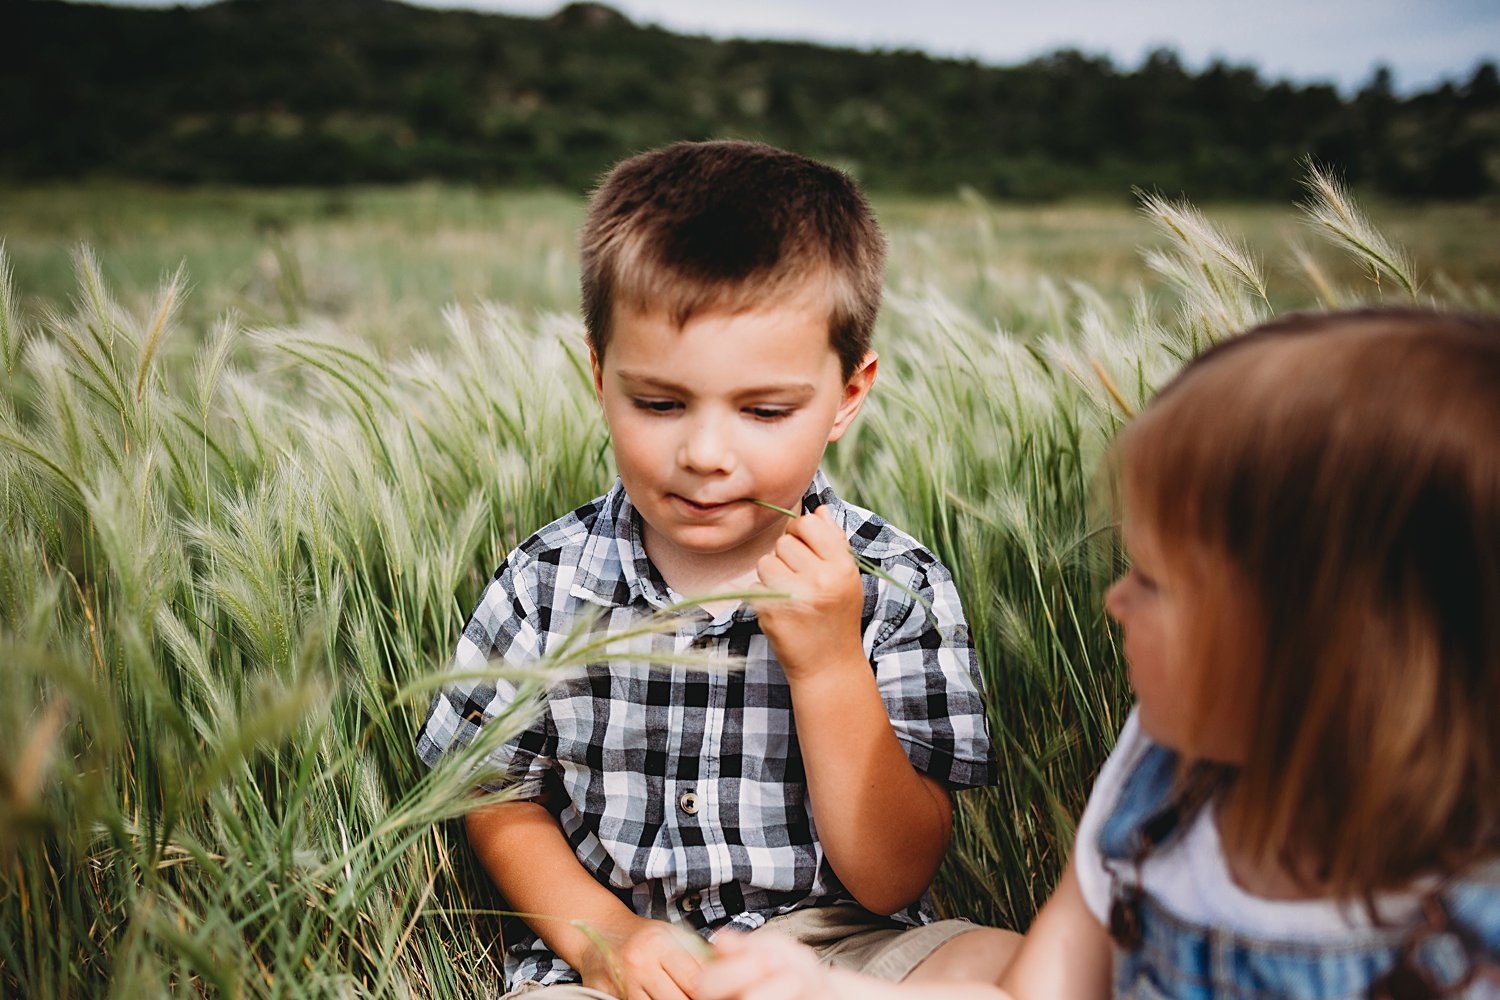 Two young children sitting in a field of tall grass